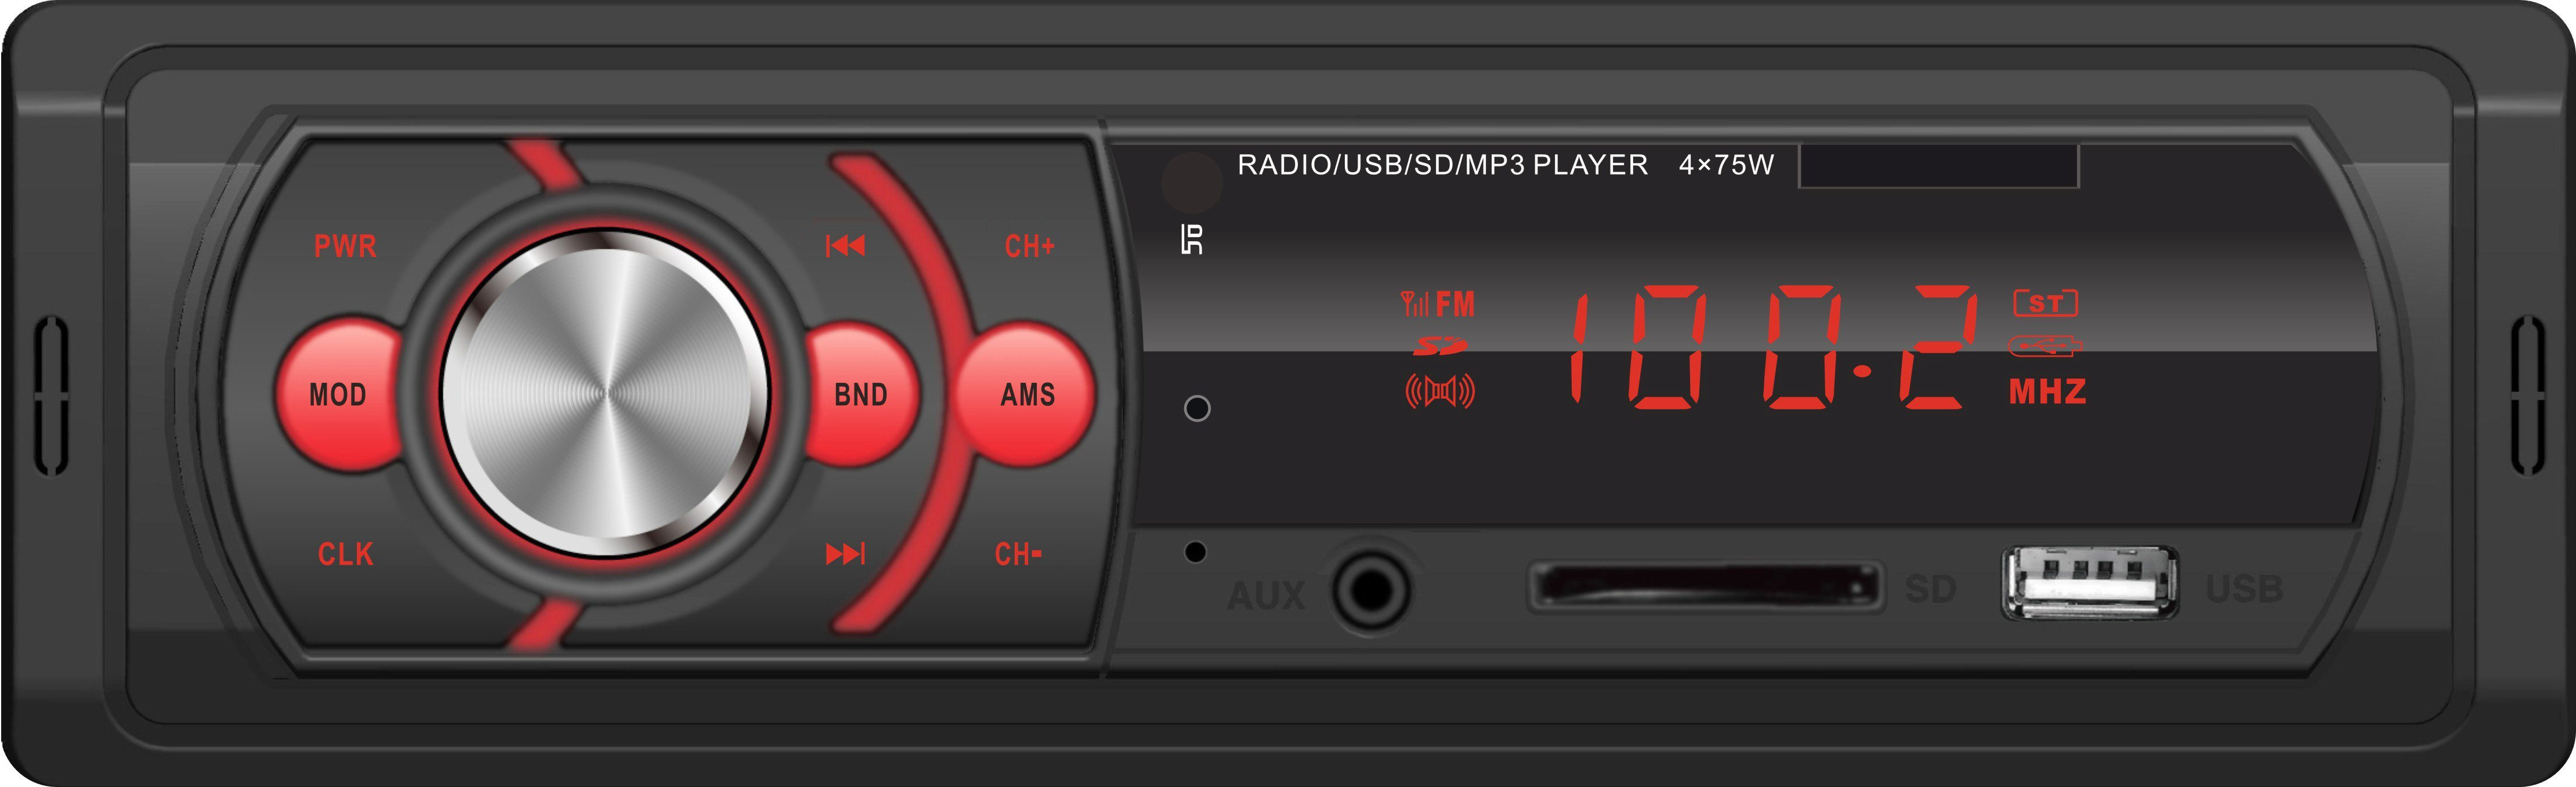 Cheap Price LED Display 1 DIN Car Radio MP3 Player with Bluetooth